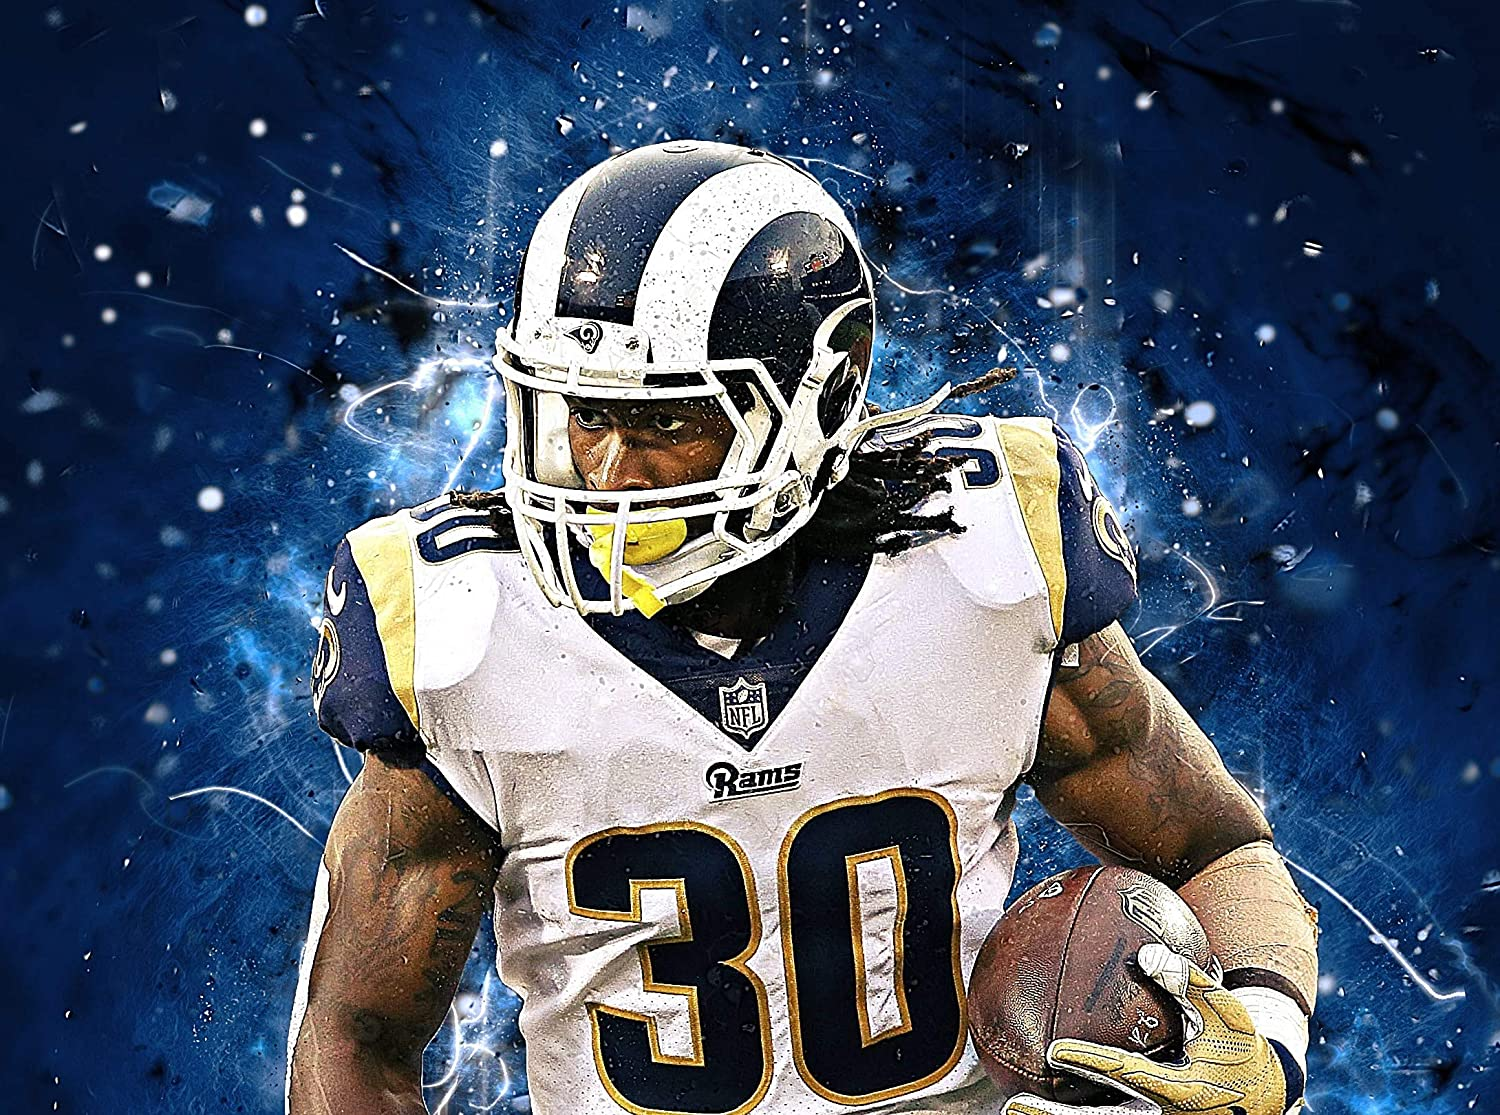 Todd Gurley Poster Print, American Football Player, Artwork, Posters for Wall, Canvas Art, Wall Art, Todd Gurley Decor, No Frame Poster Size 24 x 32 Inches